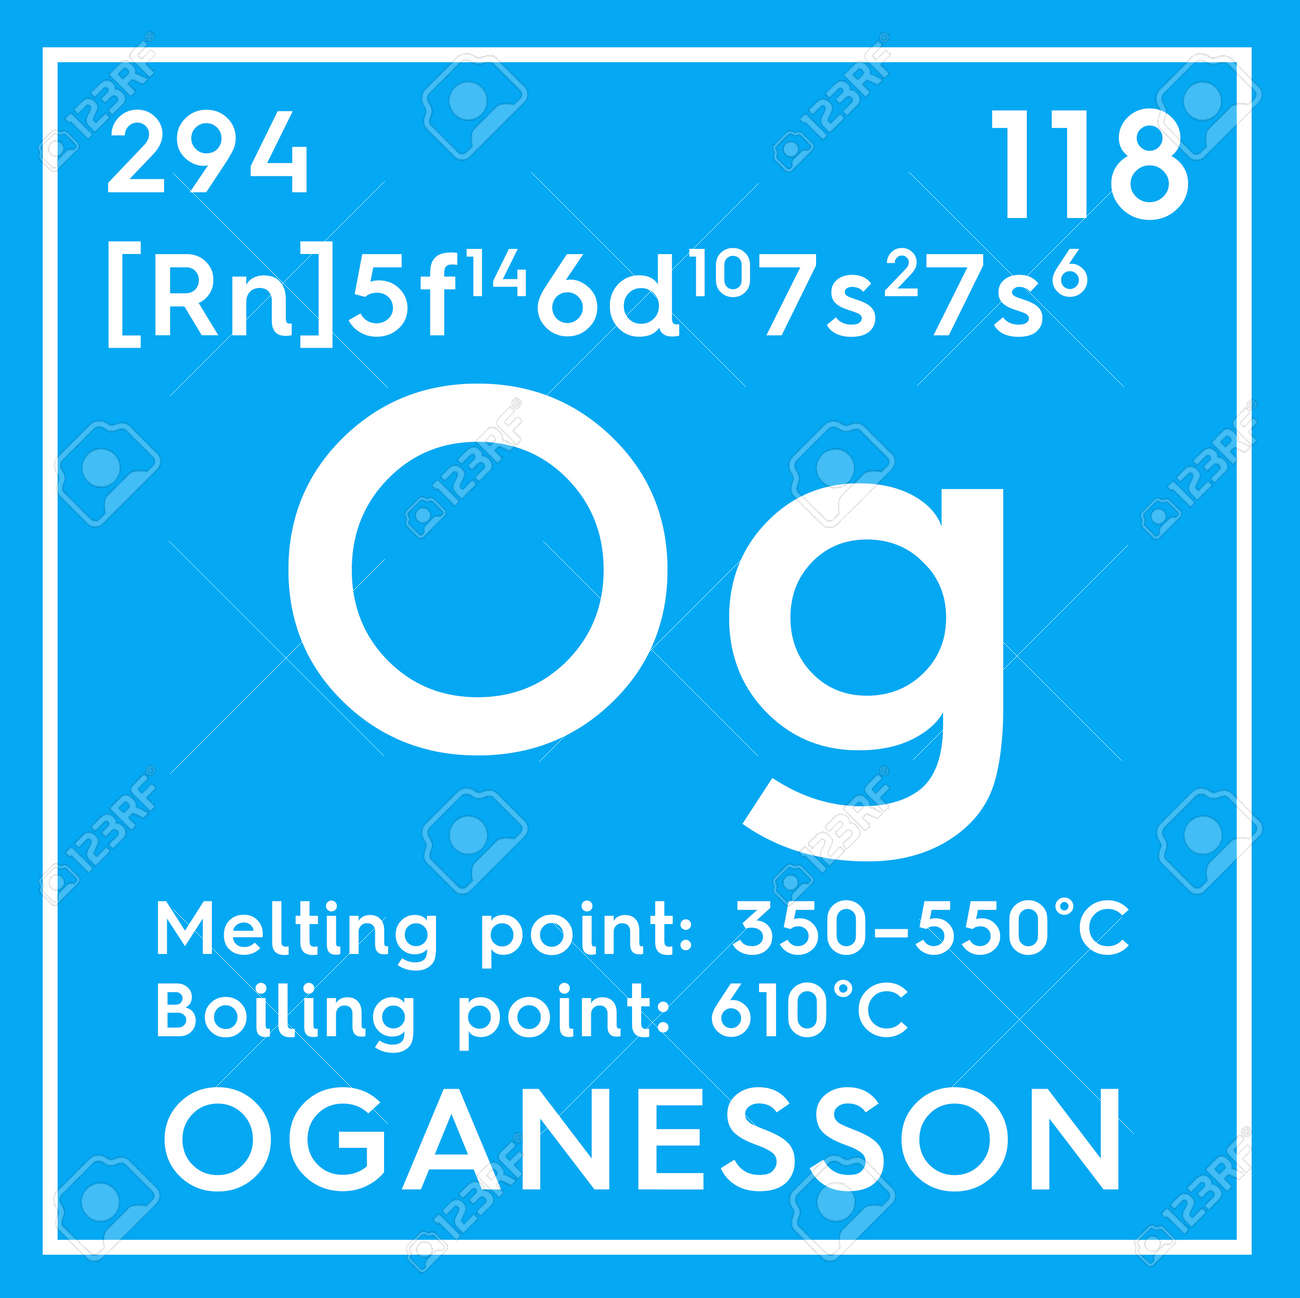 Oganesson noble gases chemical element of mendeleevs periodic chemical element of mendeleevs periodic table oganesson in square cube gamestrikefo Images